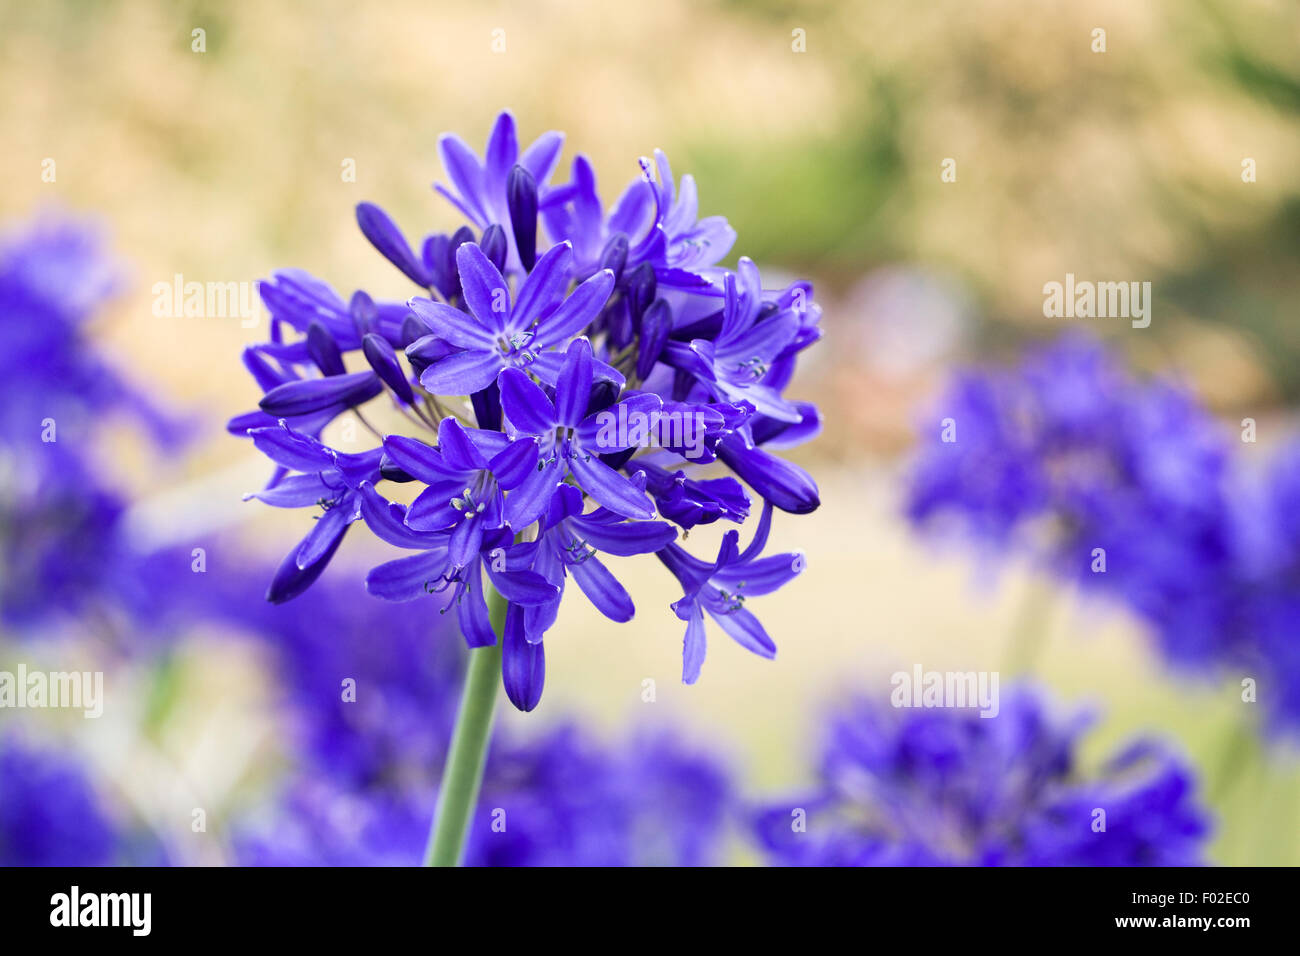 Agapanthus 'Taw Valley'. - Stock Image